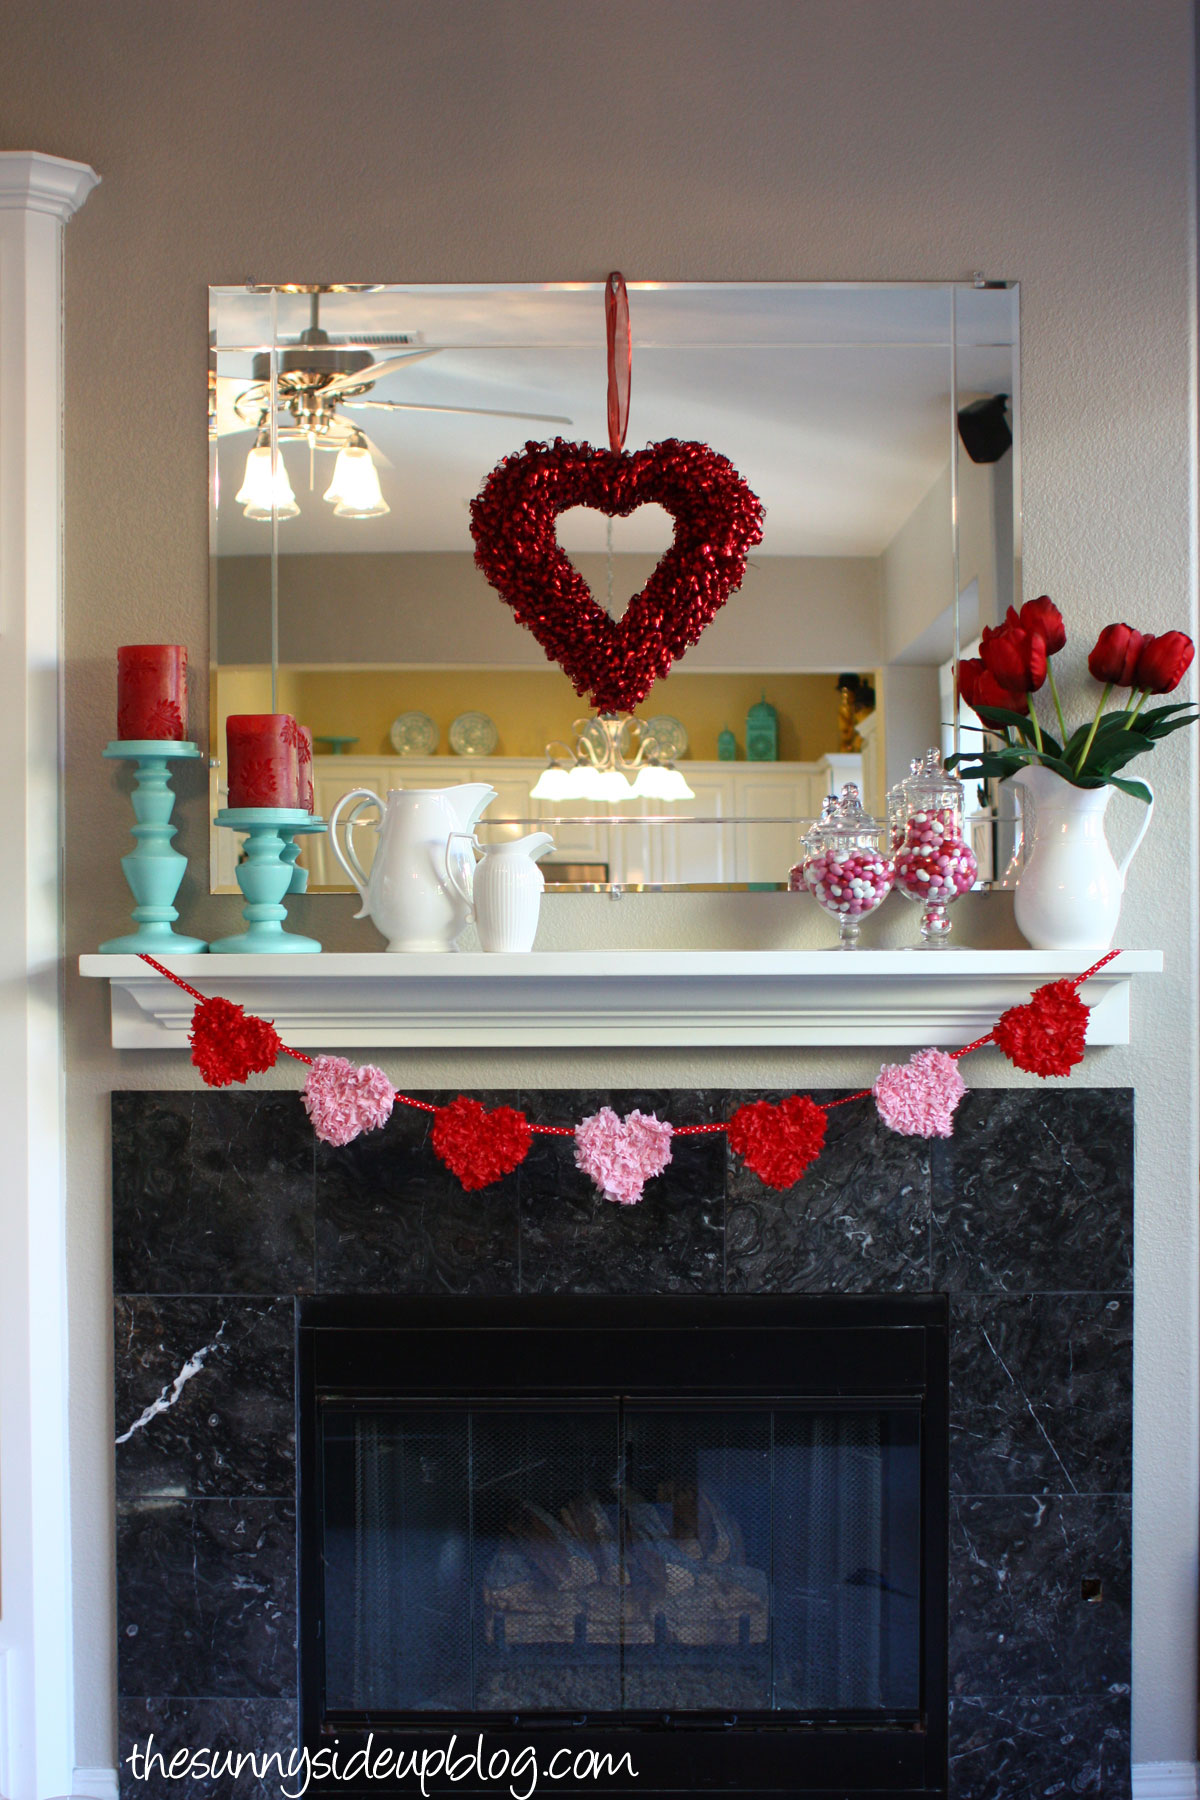 Over 10 fun ideas for Valentines Day  The Sunny Side Up